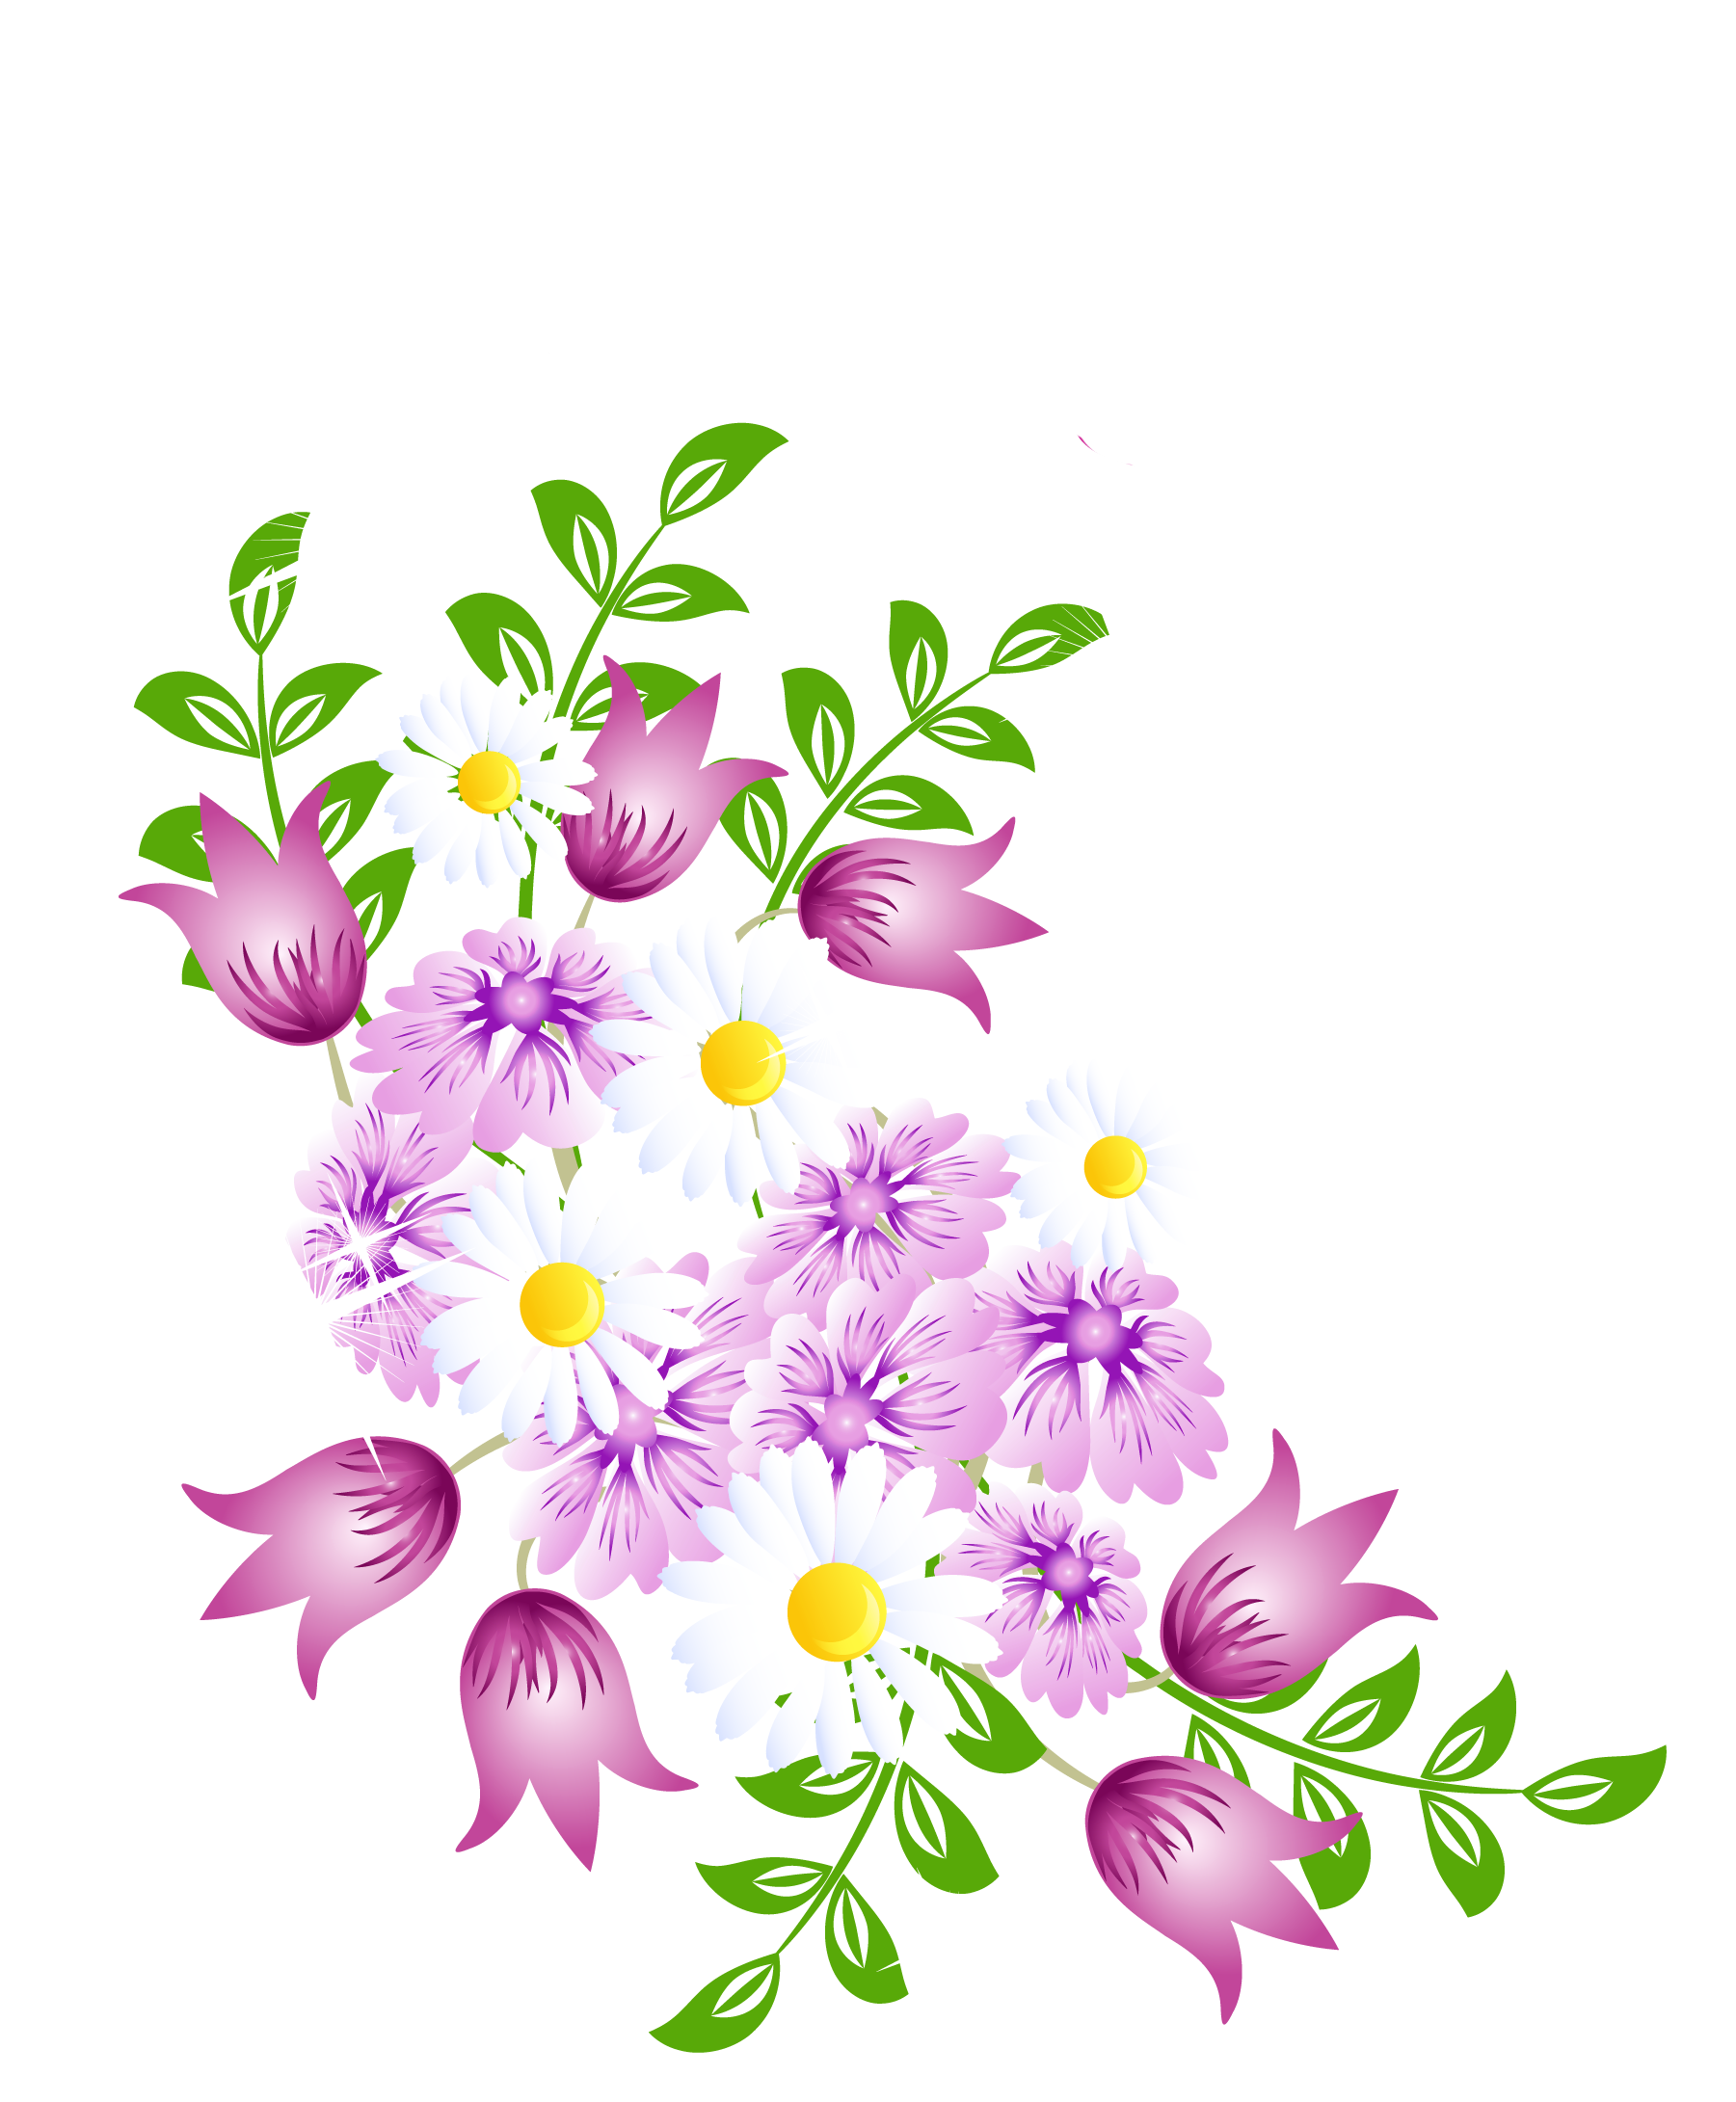 Spring flowers border png. Decor picture clipart gallery